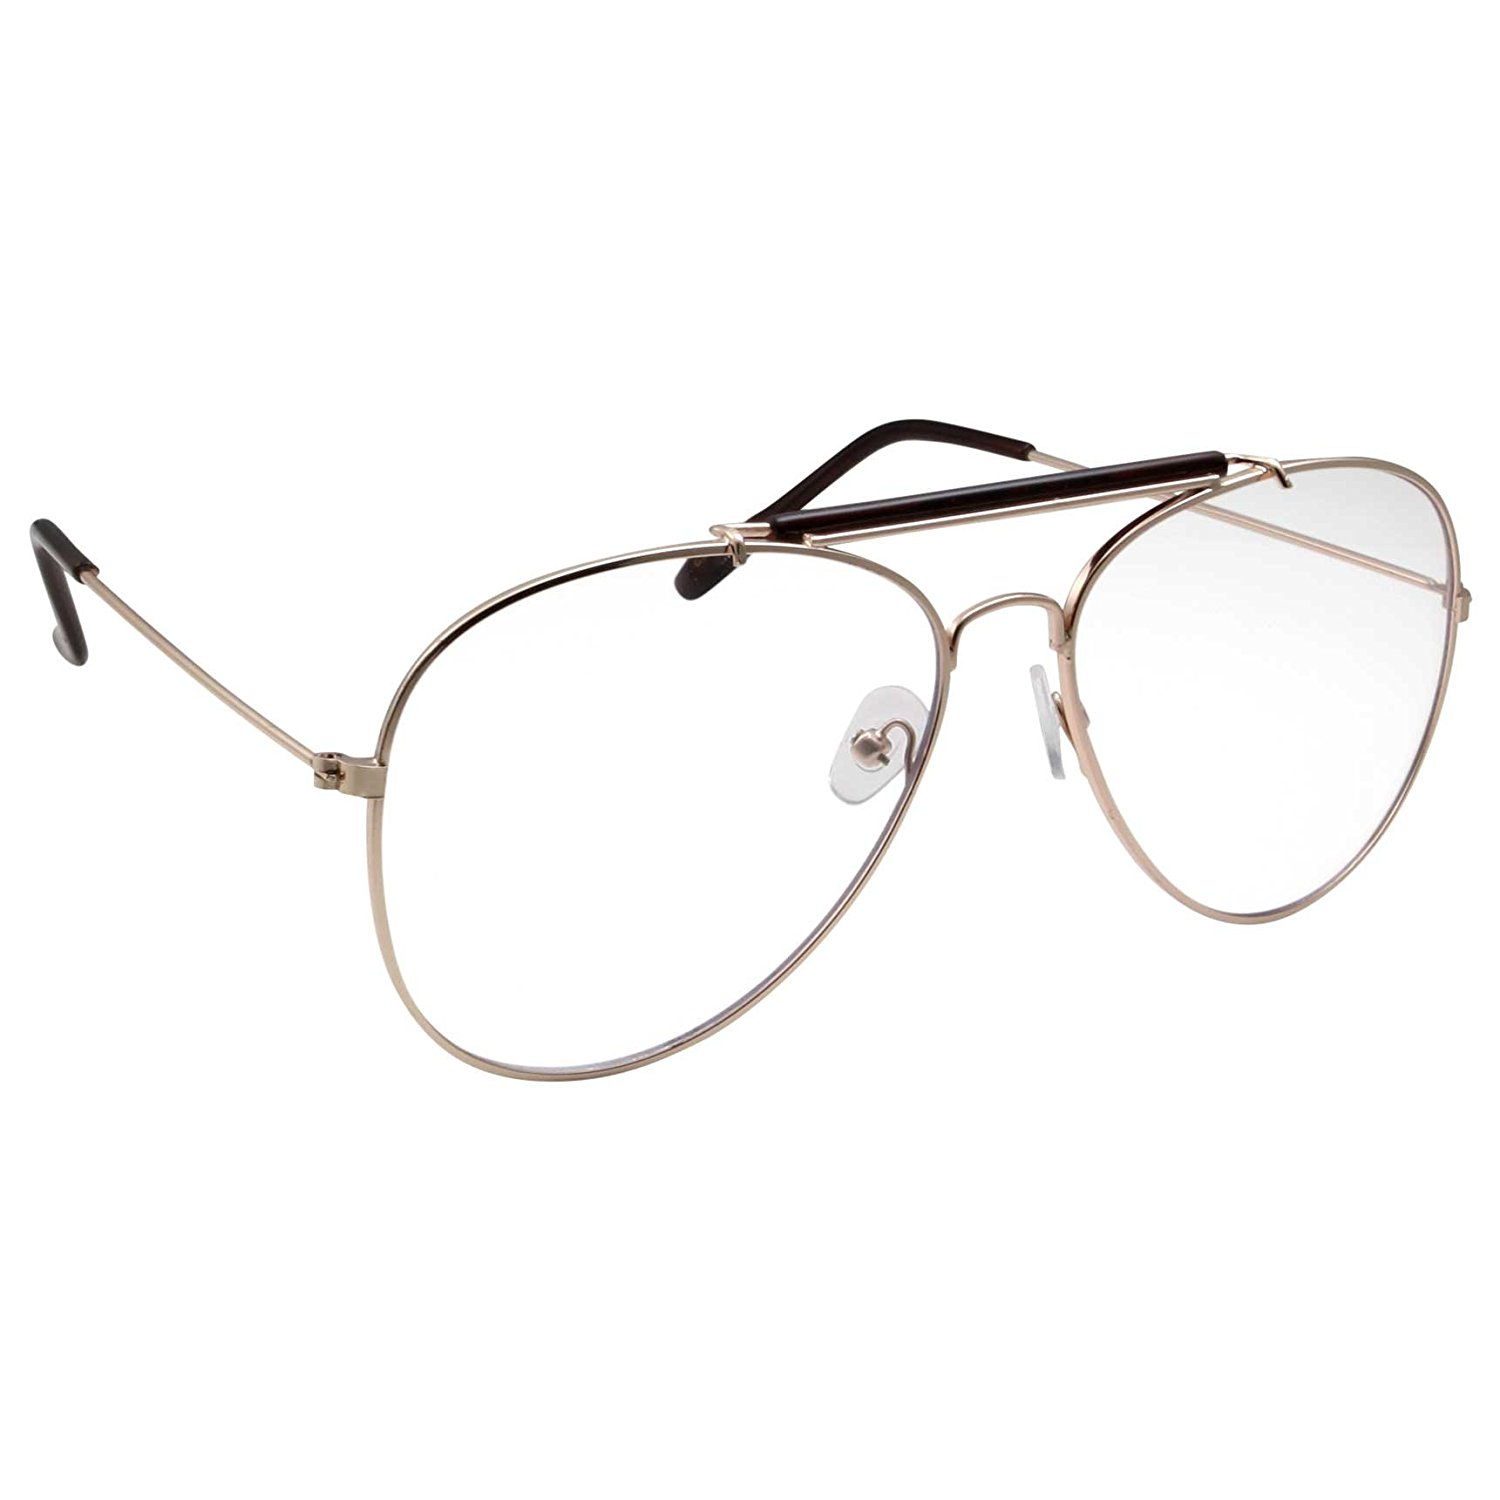 07aff8f52a0 Get Quotations · Non-Prescription Bar-Top Aviator Clear Lens Glasses